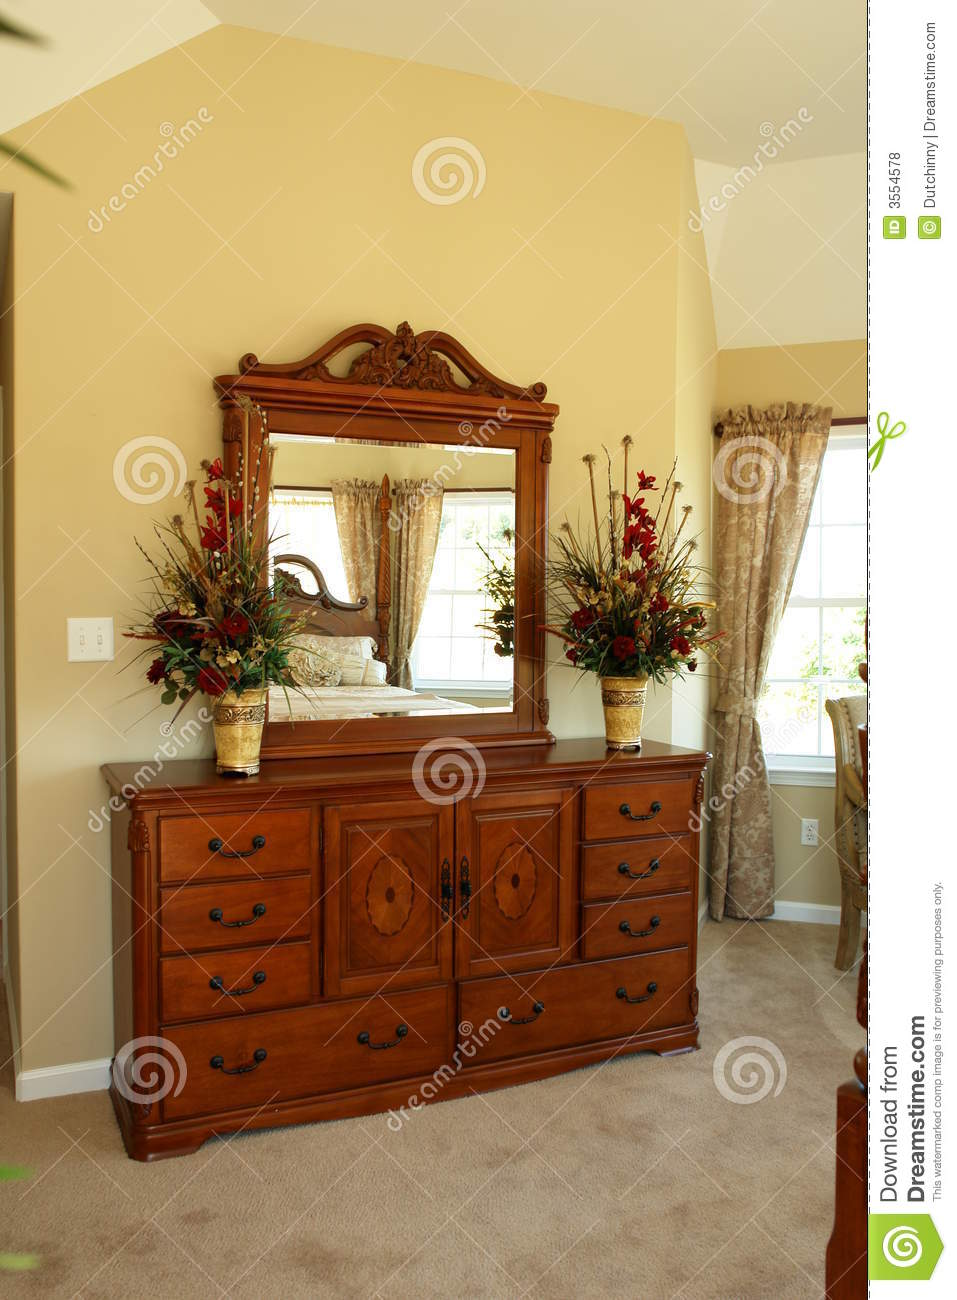 Beautiful dresser in bedroom royalty free stock photos image 3554578 Beautiful wooden furniture